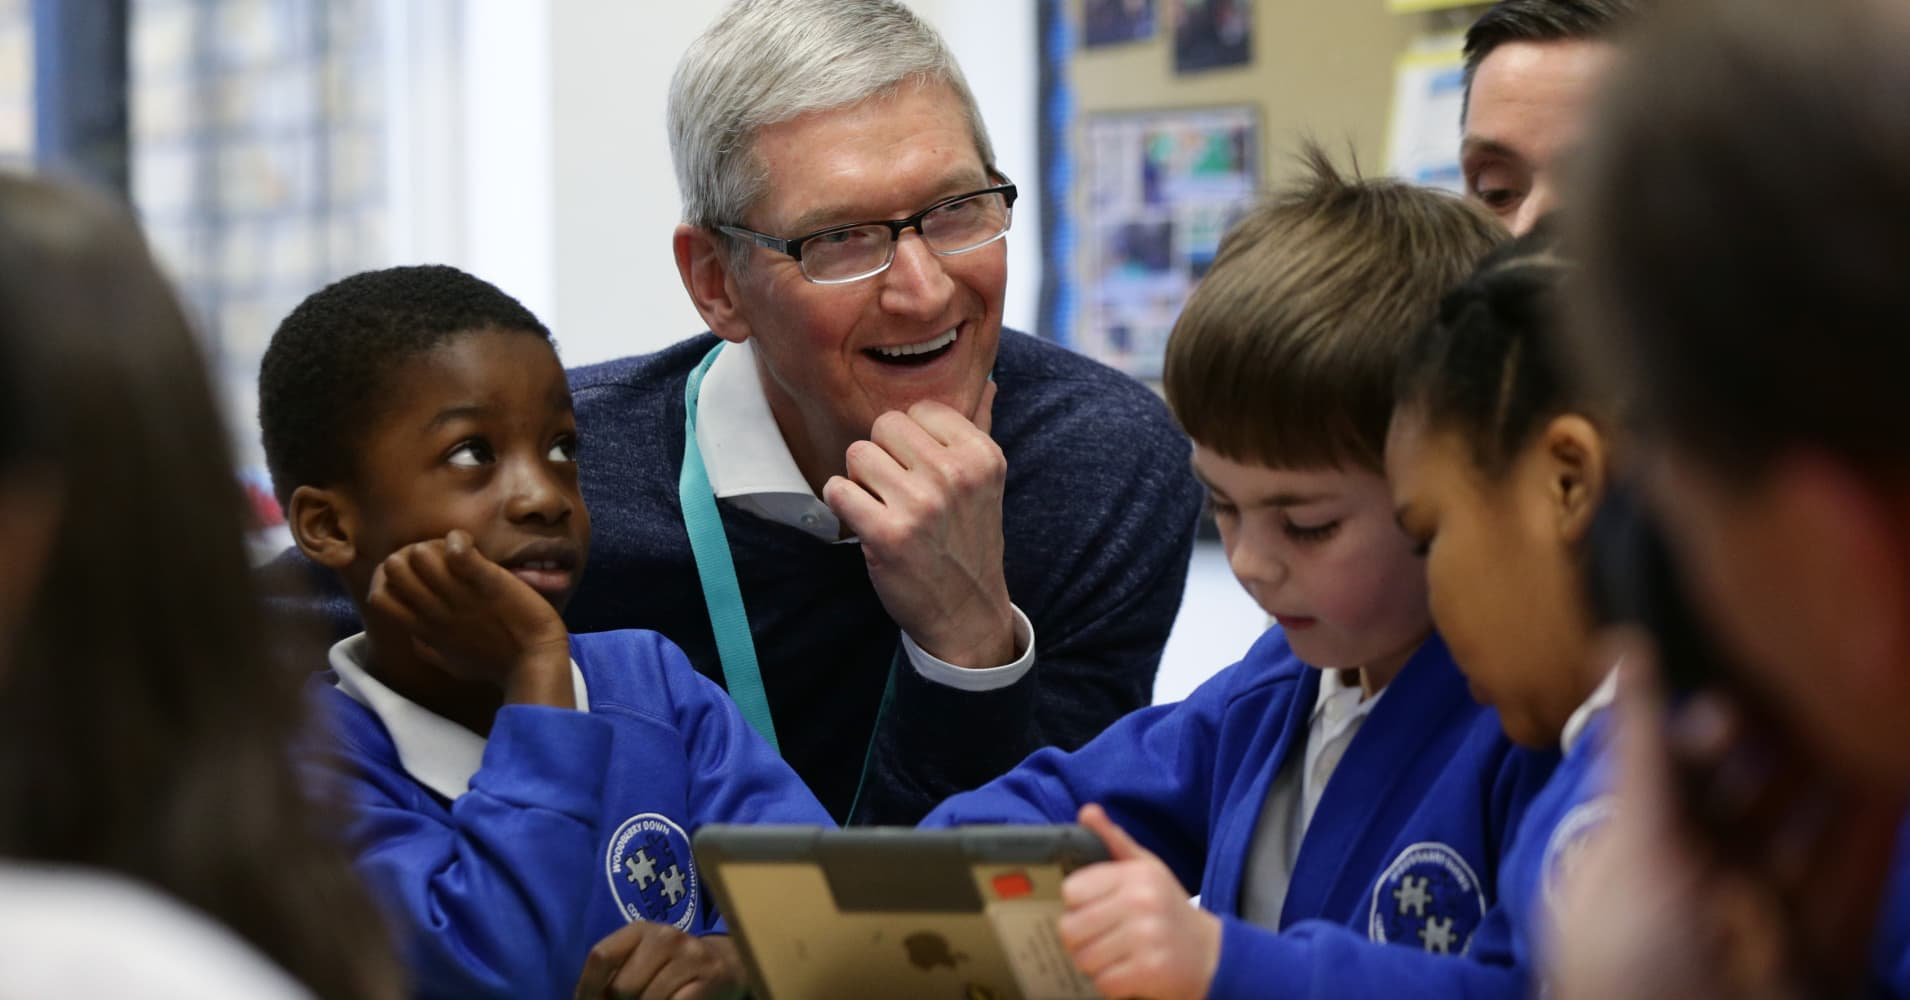 Apple chief executive Tim Cook interacts with Year 2 pupils in a classroom, during a visit to Woodberry Down Community Primary School in Harringay, north London, to view how the school, which is part of the New Wave Federation group of schools, had incorporated Apple's iPad and related software into lesson plans.